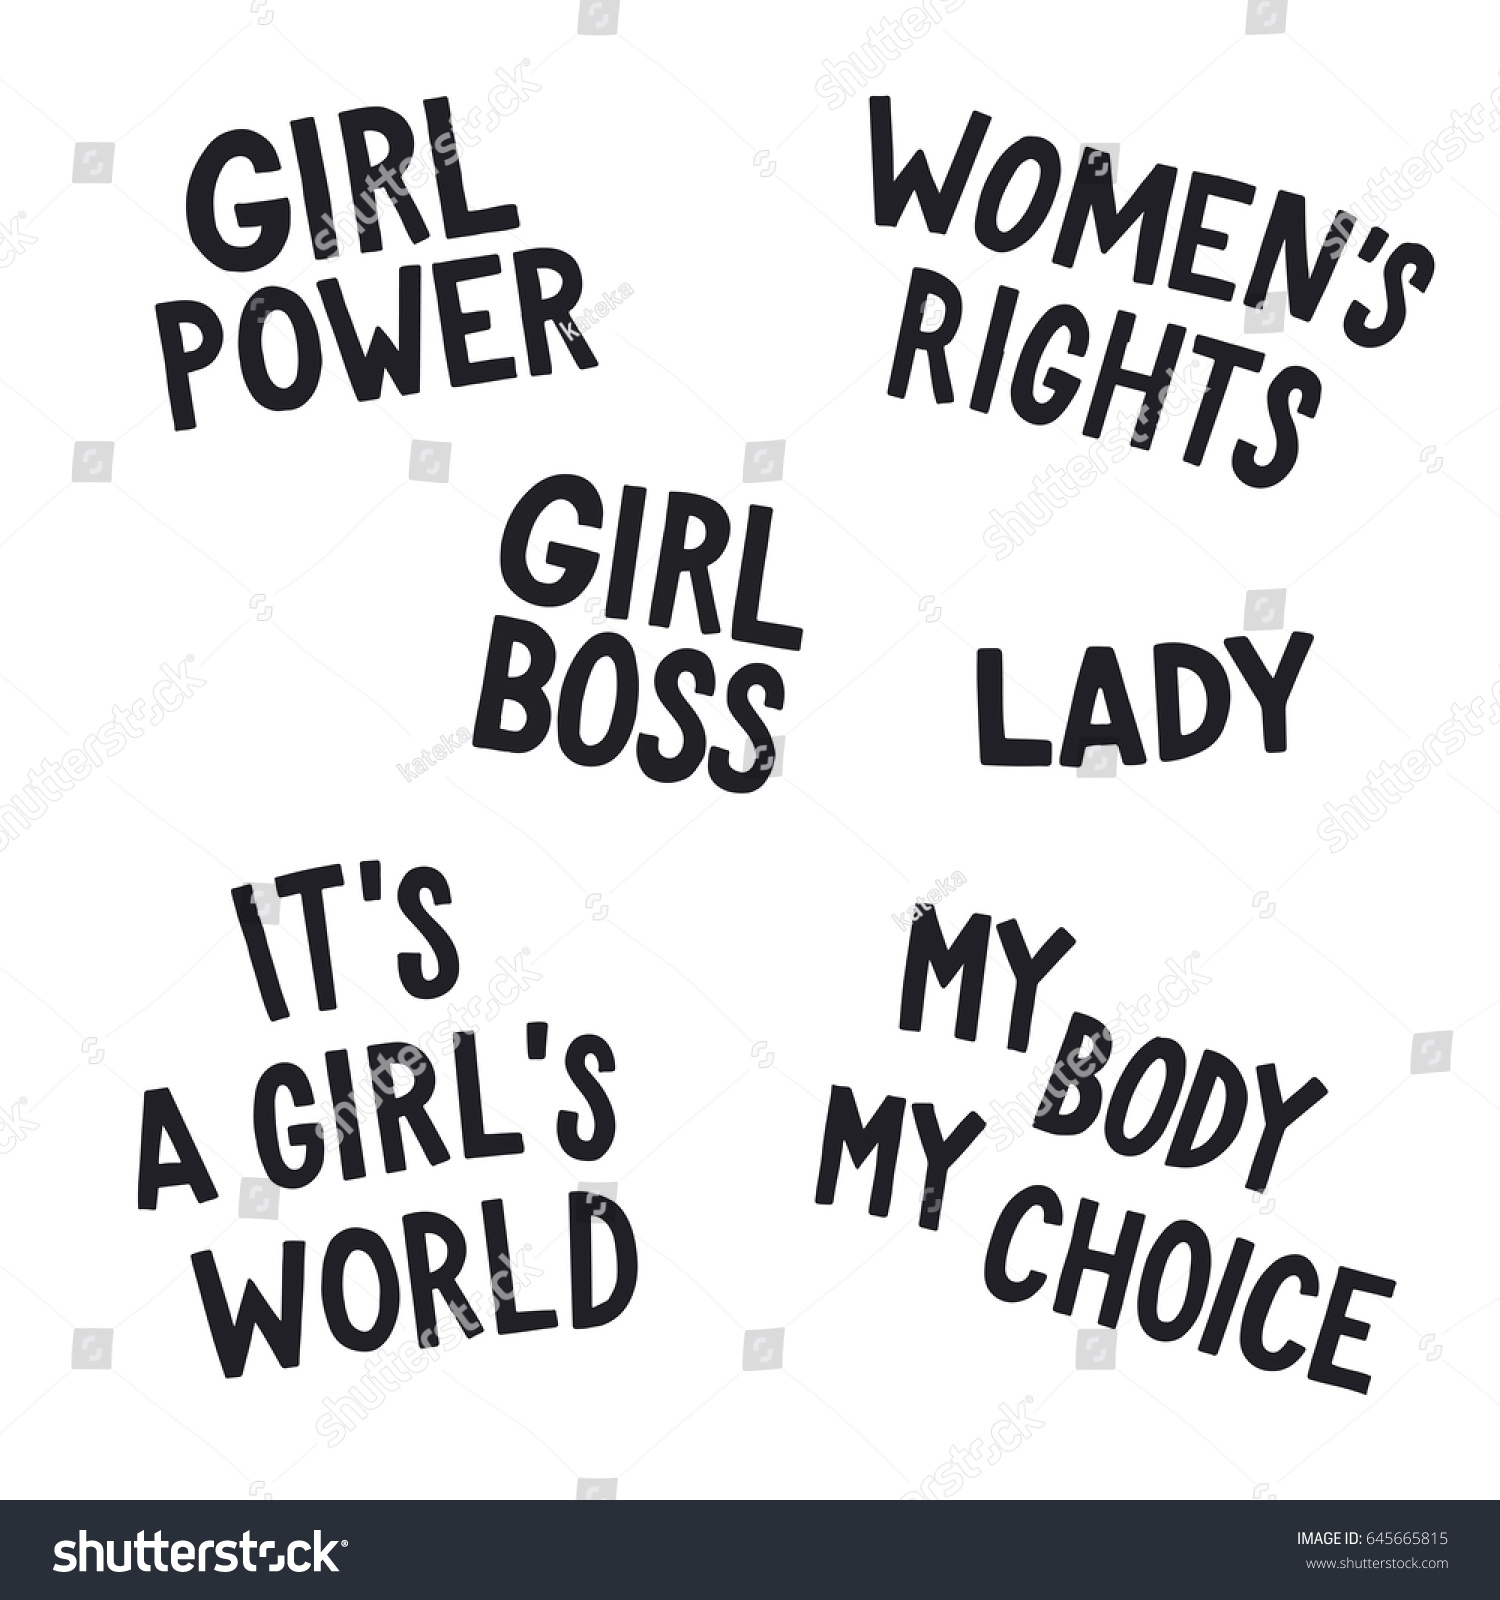 Girl Power Quotes Feminist Quotes Set Girl Power Womens Stock Vector 645665815